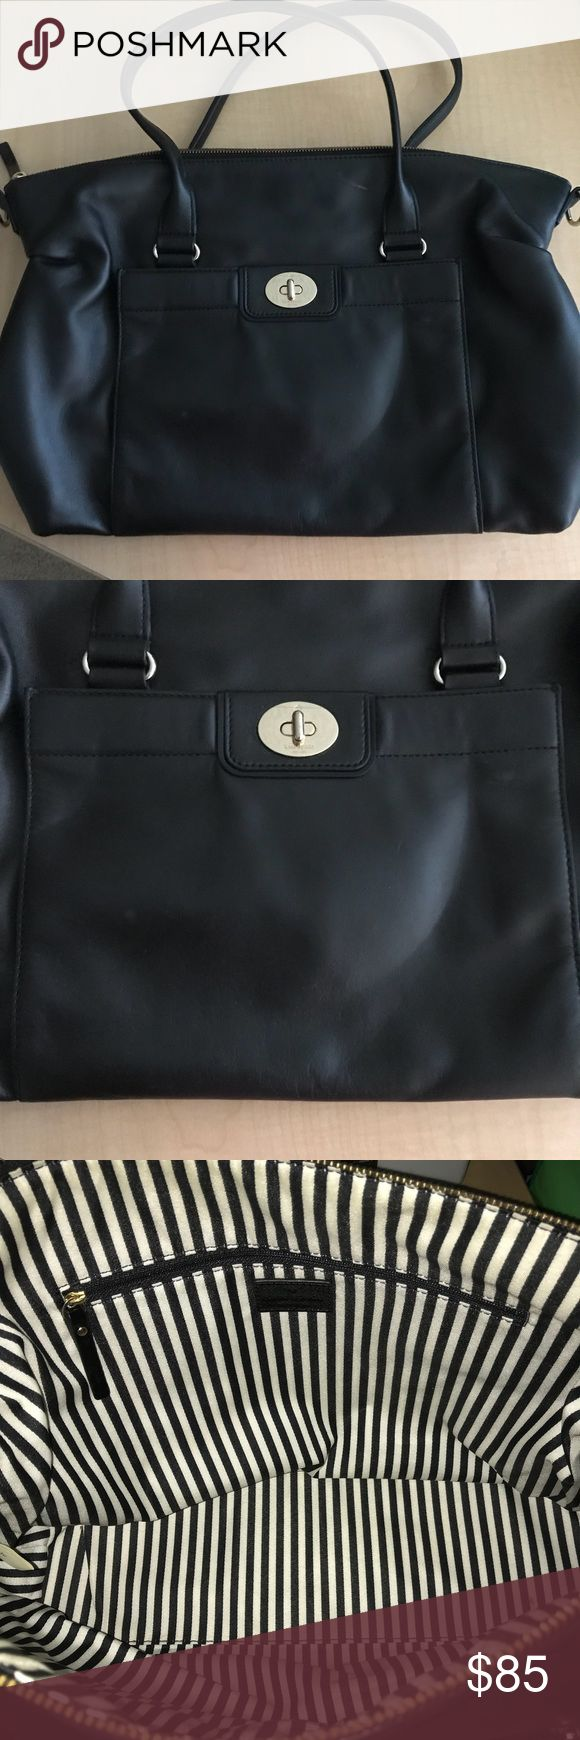 Kate Spade Tote Bag A black leather tote bag from Kate spade. It has two small handles for you to carry and put on your forearm. The front has a small pocket with twist closure. The inside is black and white striped with pockets on the side. It's a medium to large size bag and has a zipper. It has one scratch on the front. It does not come with a large strap. kate spade Bags Totes